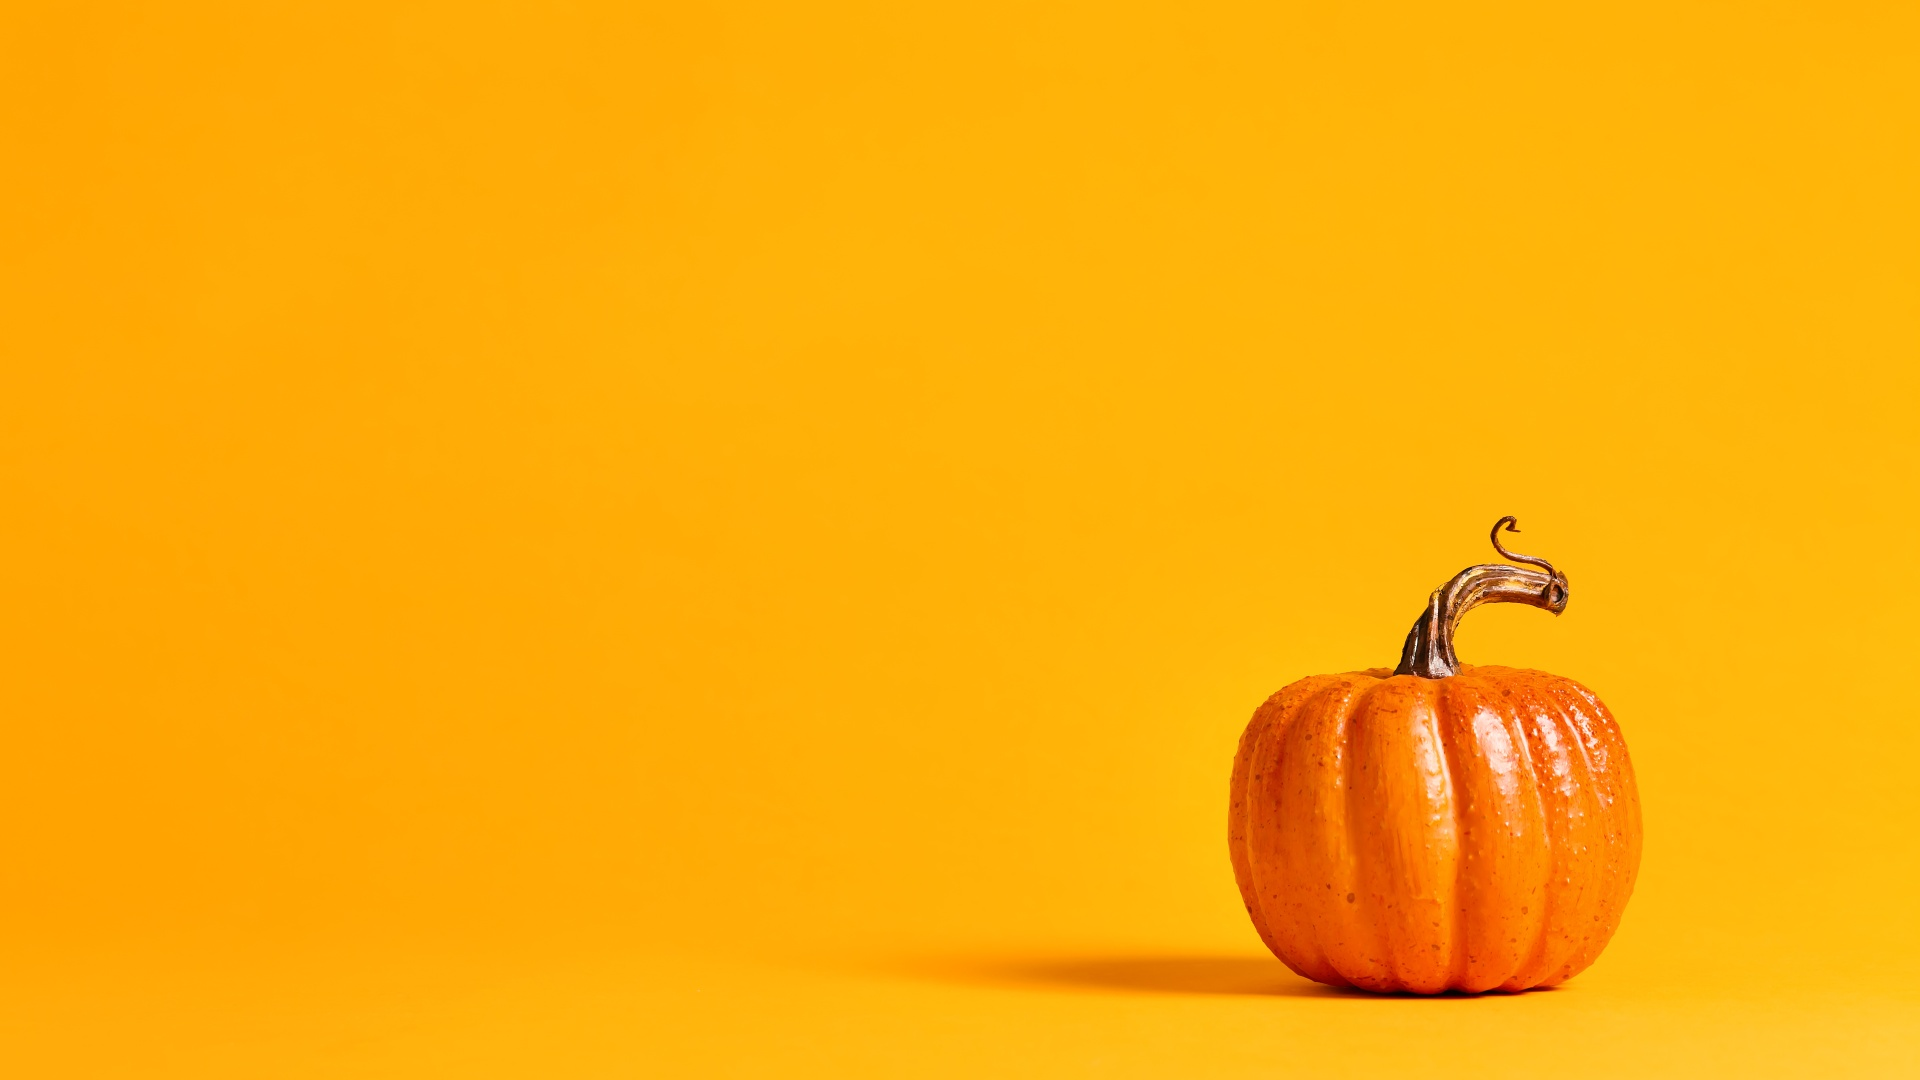 Trader Joe's Released Their Pumpkin Line For Fall [PICS]